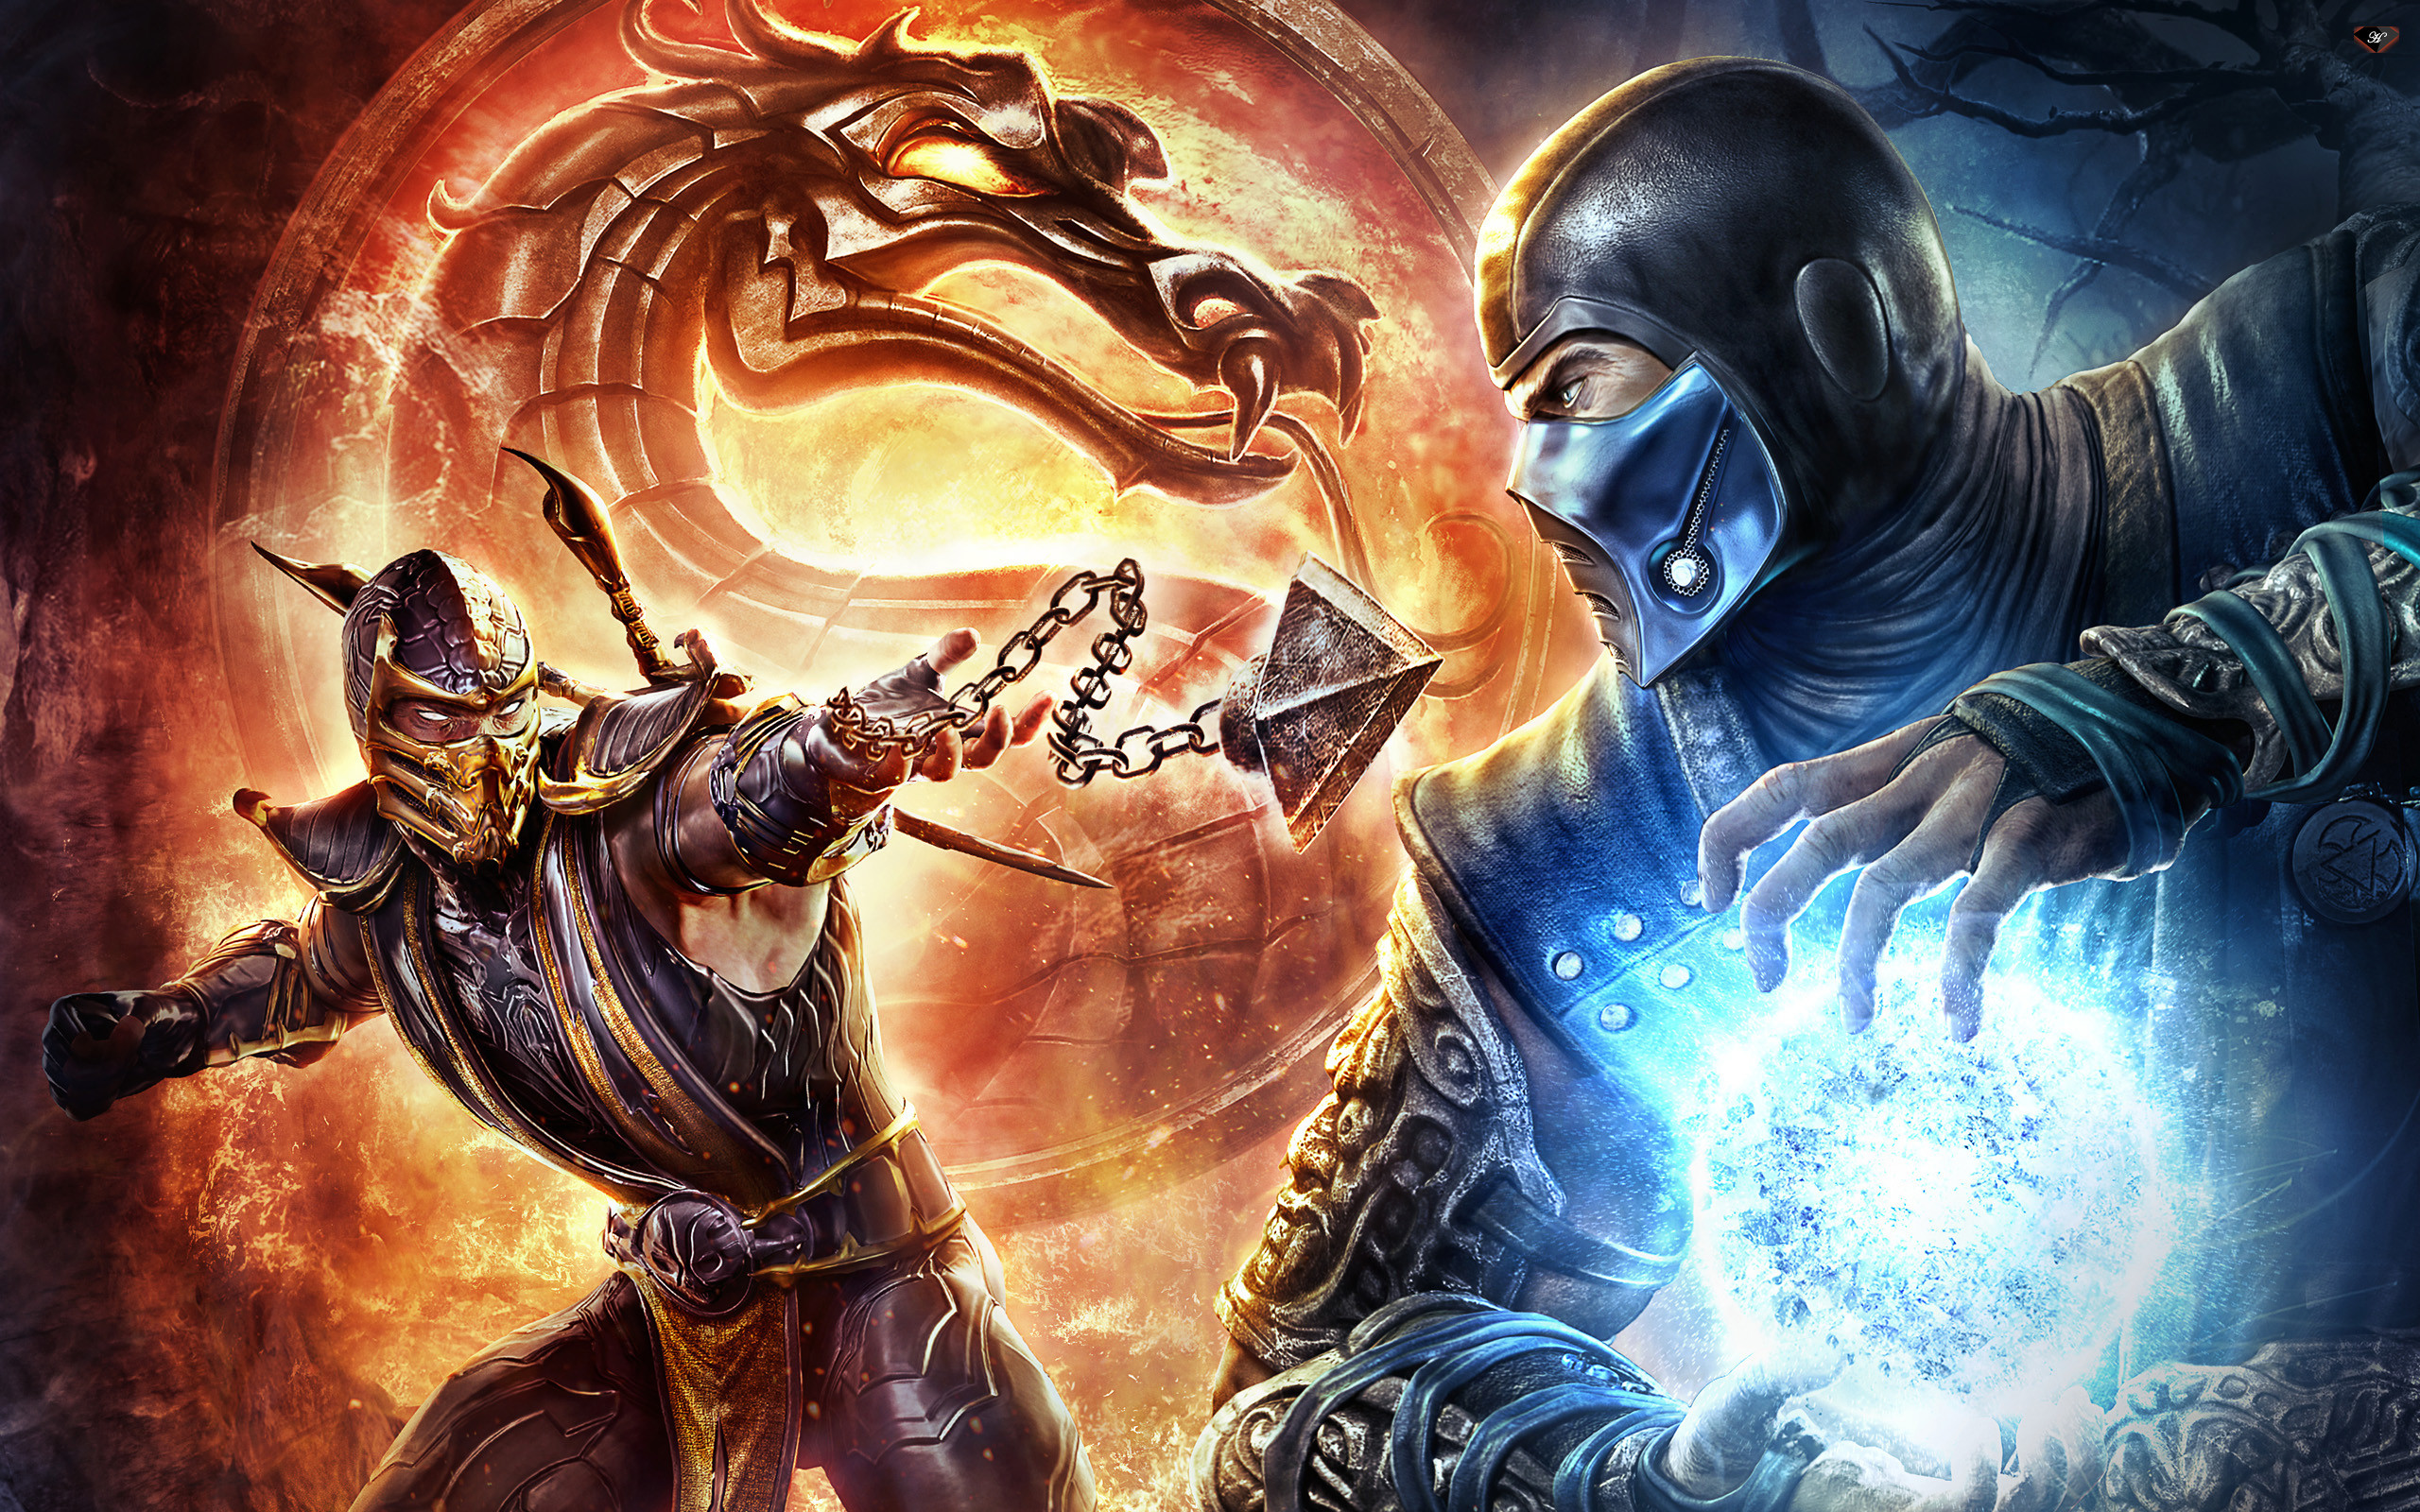 1920x1200 Scorpion Wallpaper Mortal Kombat 9